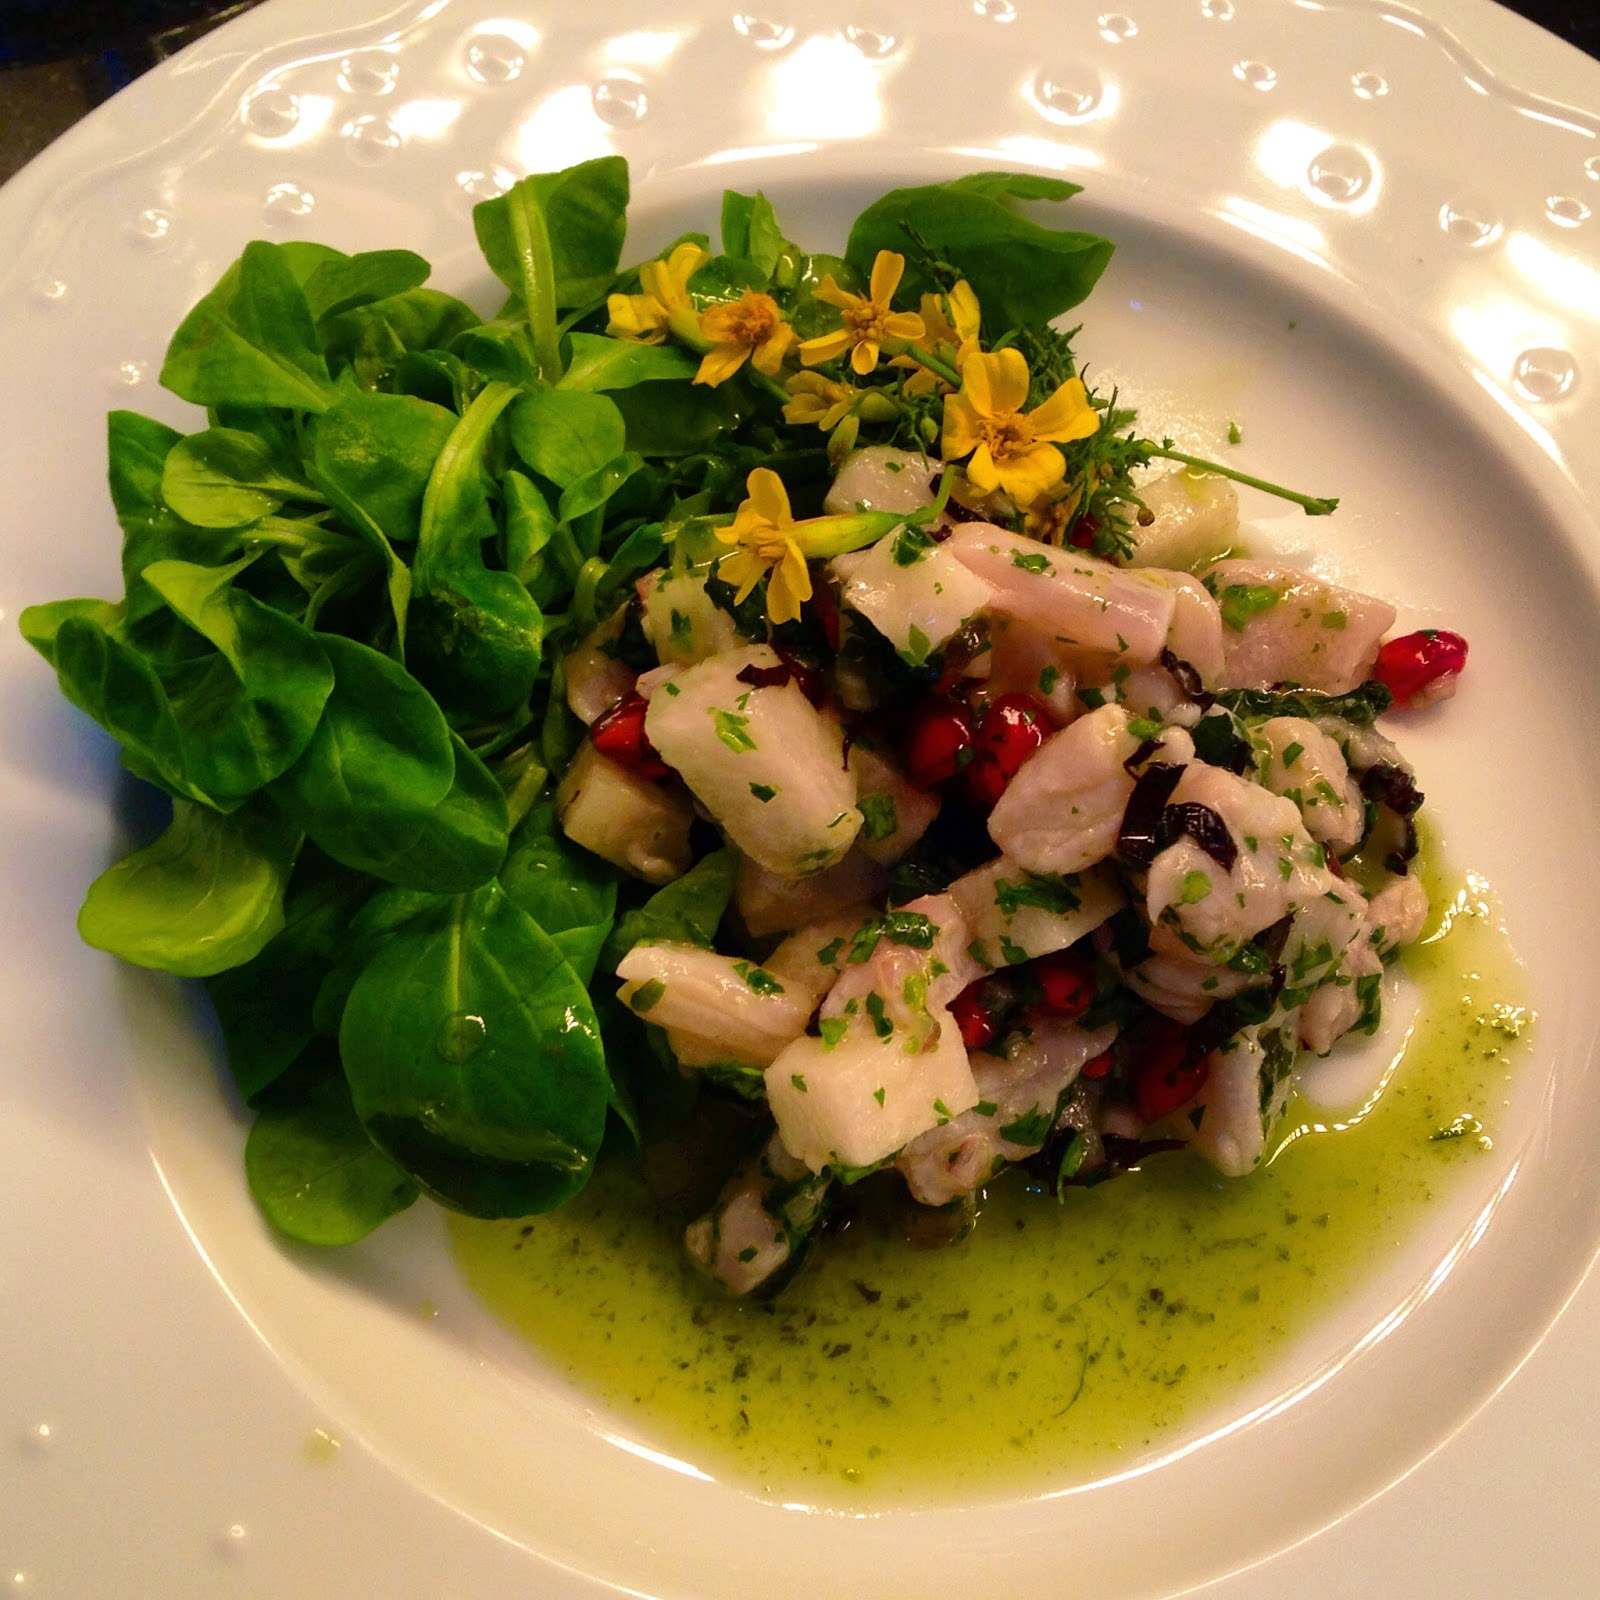 Striped bass ceviche with holy basil, pomegranate, mache, and herb oil